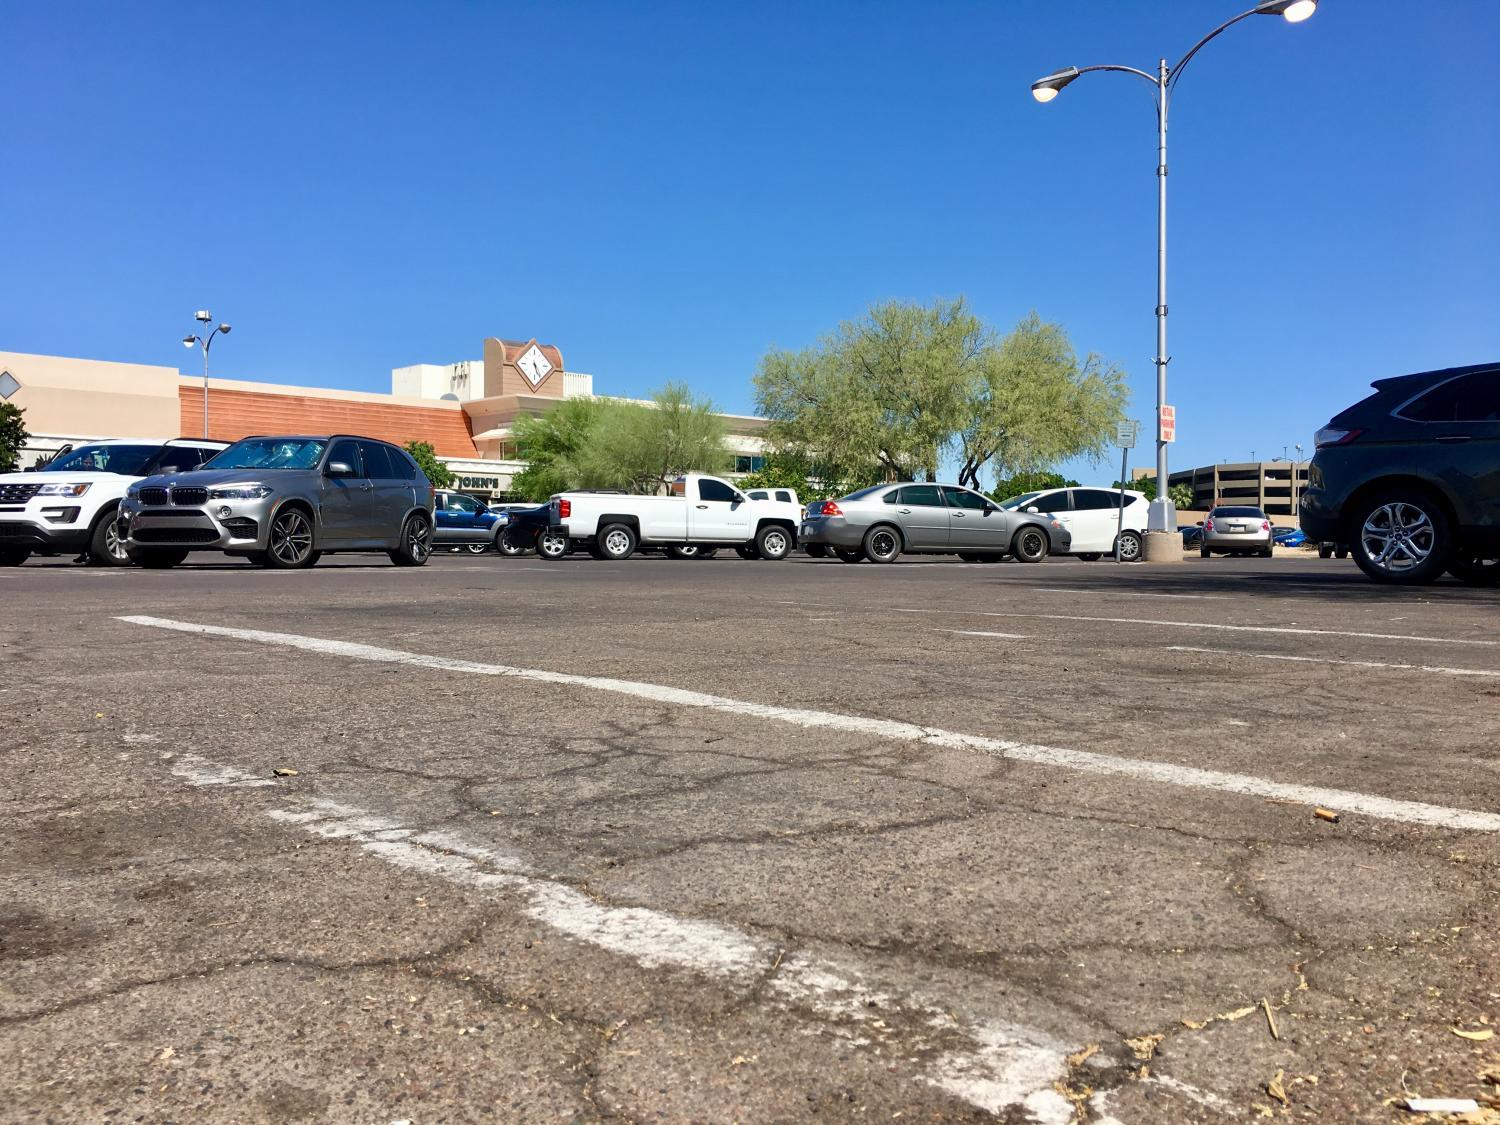 Park Central Mall parking lot